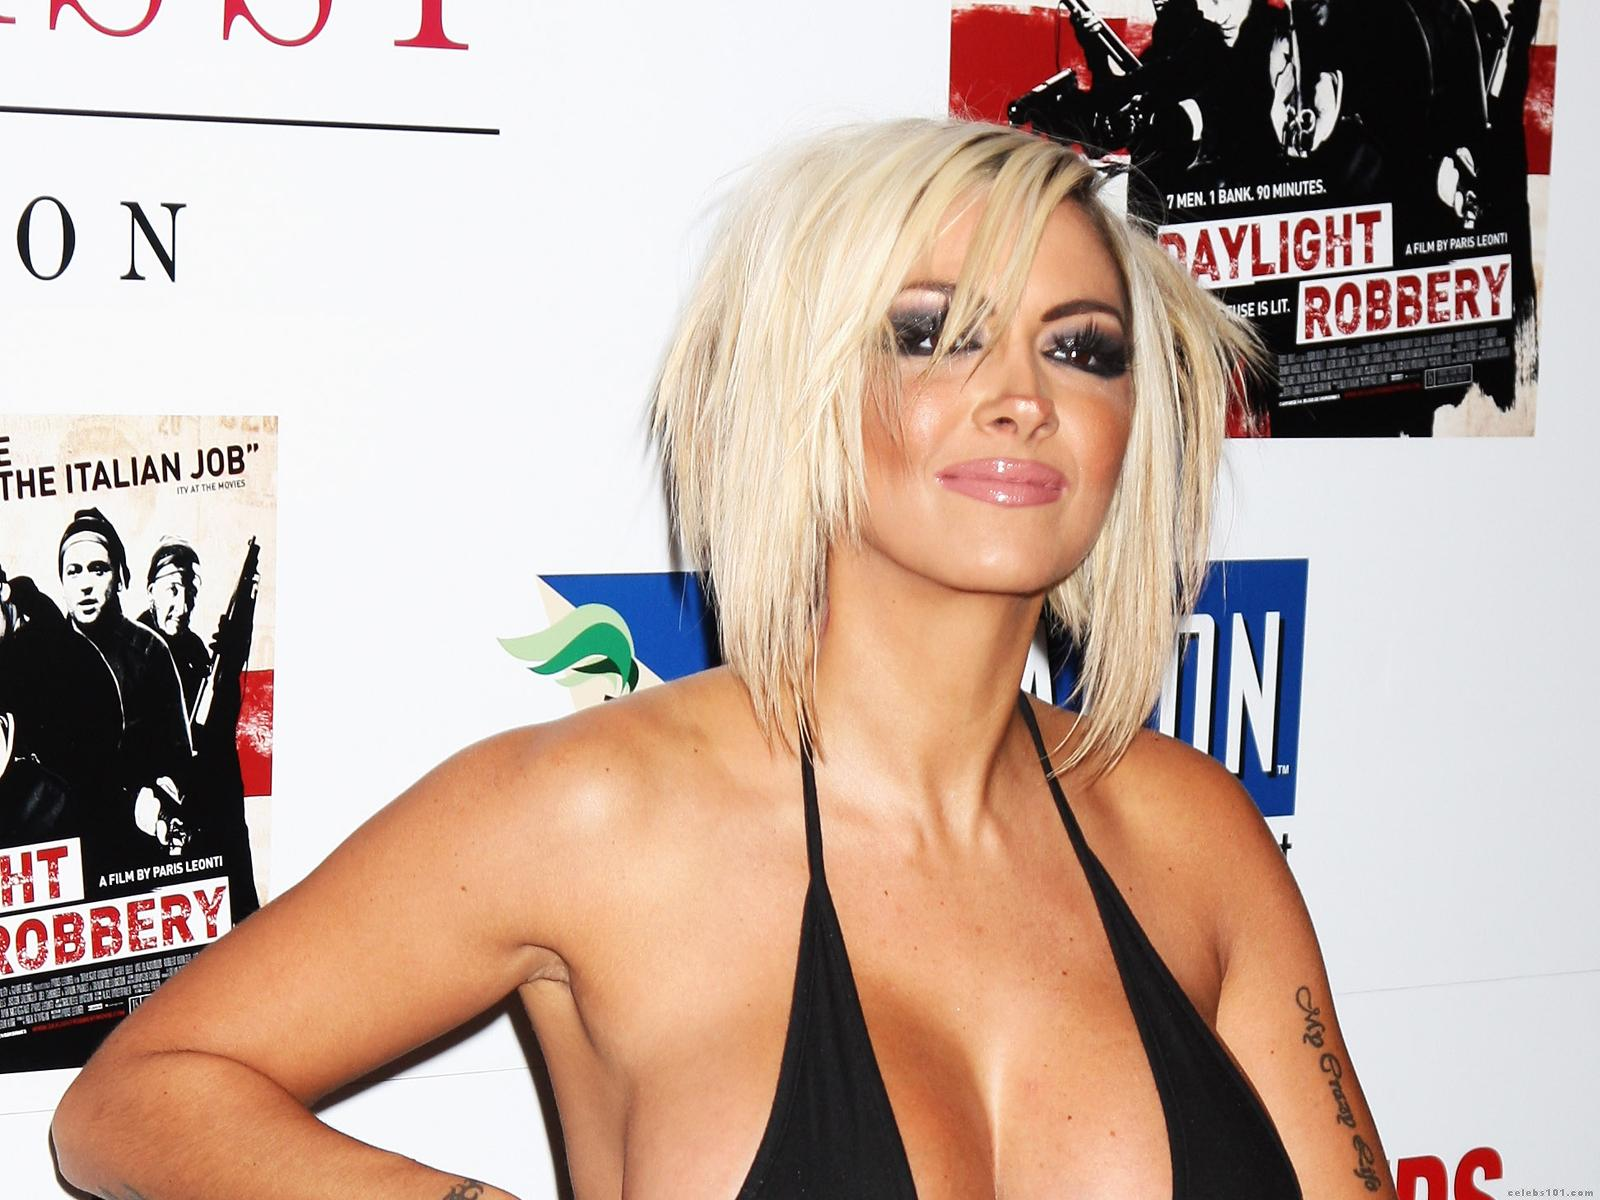 http://www.celebs101.com/wallpapers/Jodie_Marsh/235123/Jodie_Marsh_Wallpaper.jpg